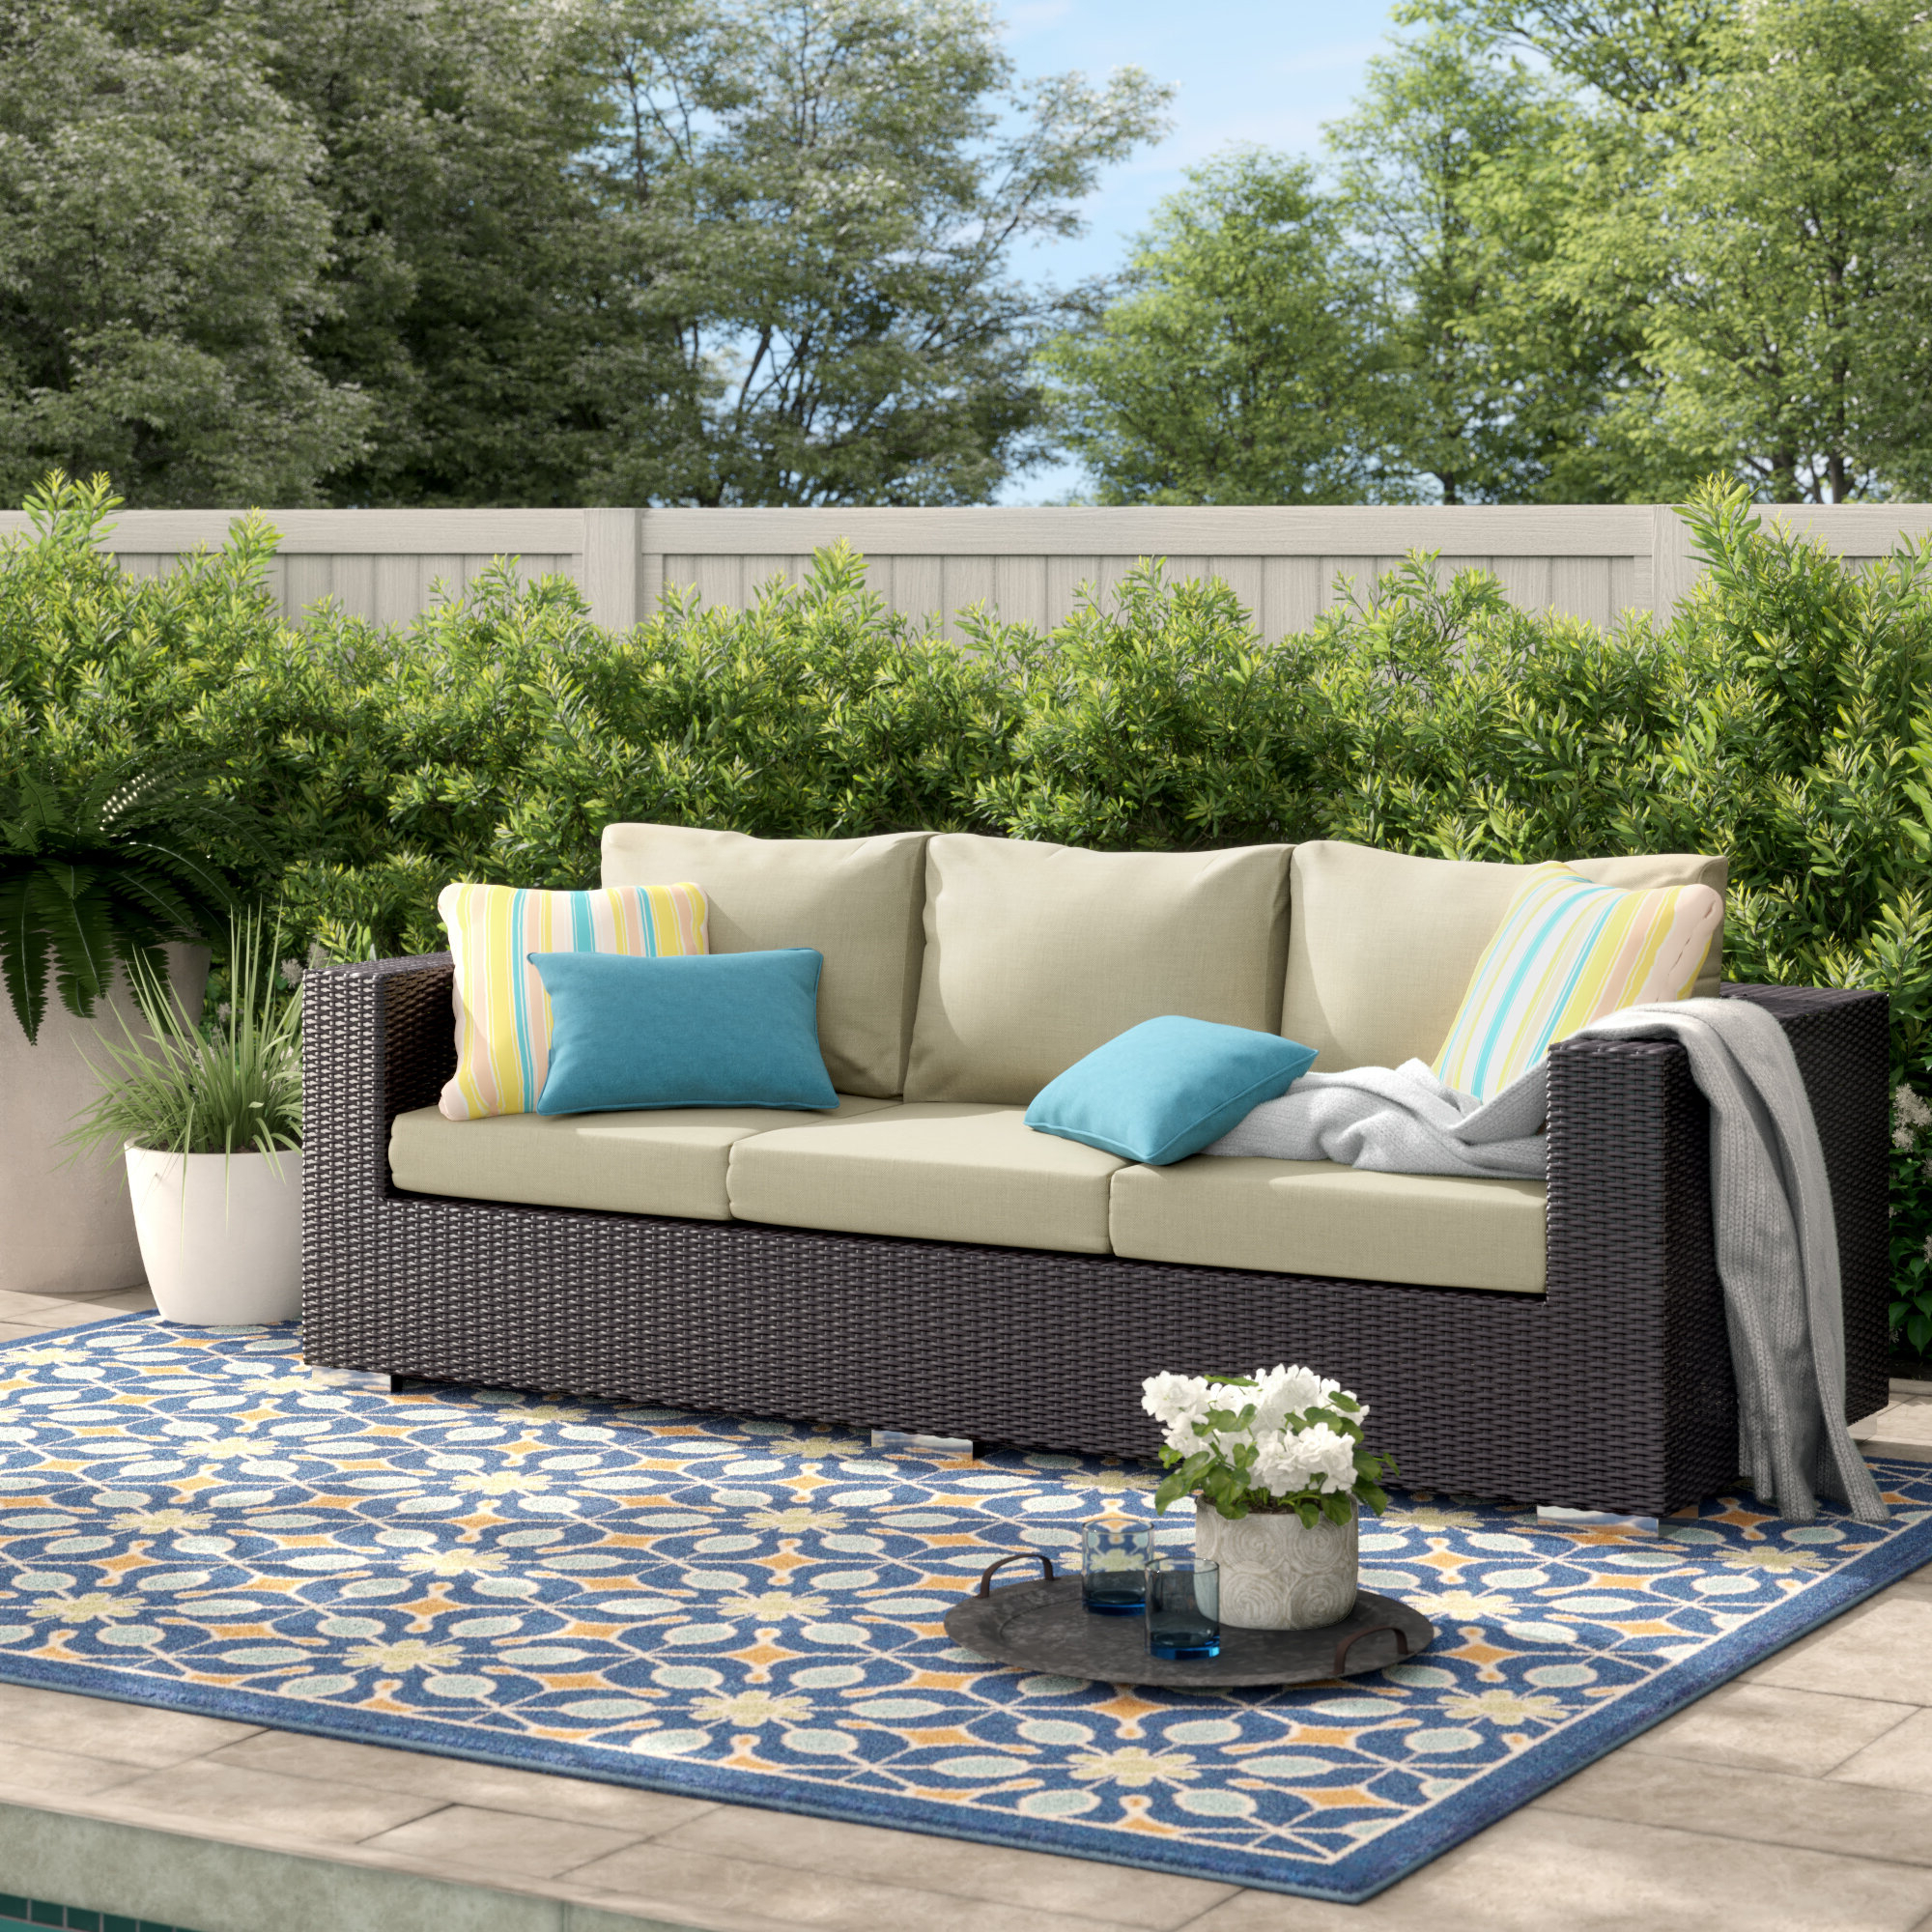 Keiran Patio Sofas With Cushions Throughout Favorite Brentwood Patio Sofa With Cushions (View 10 of 20)